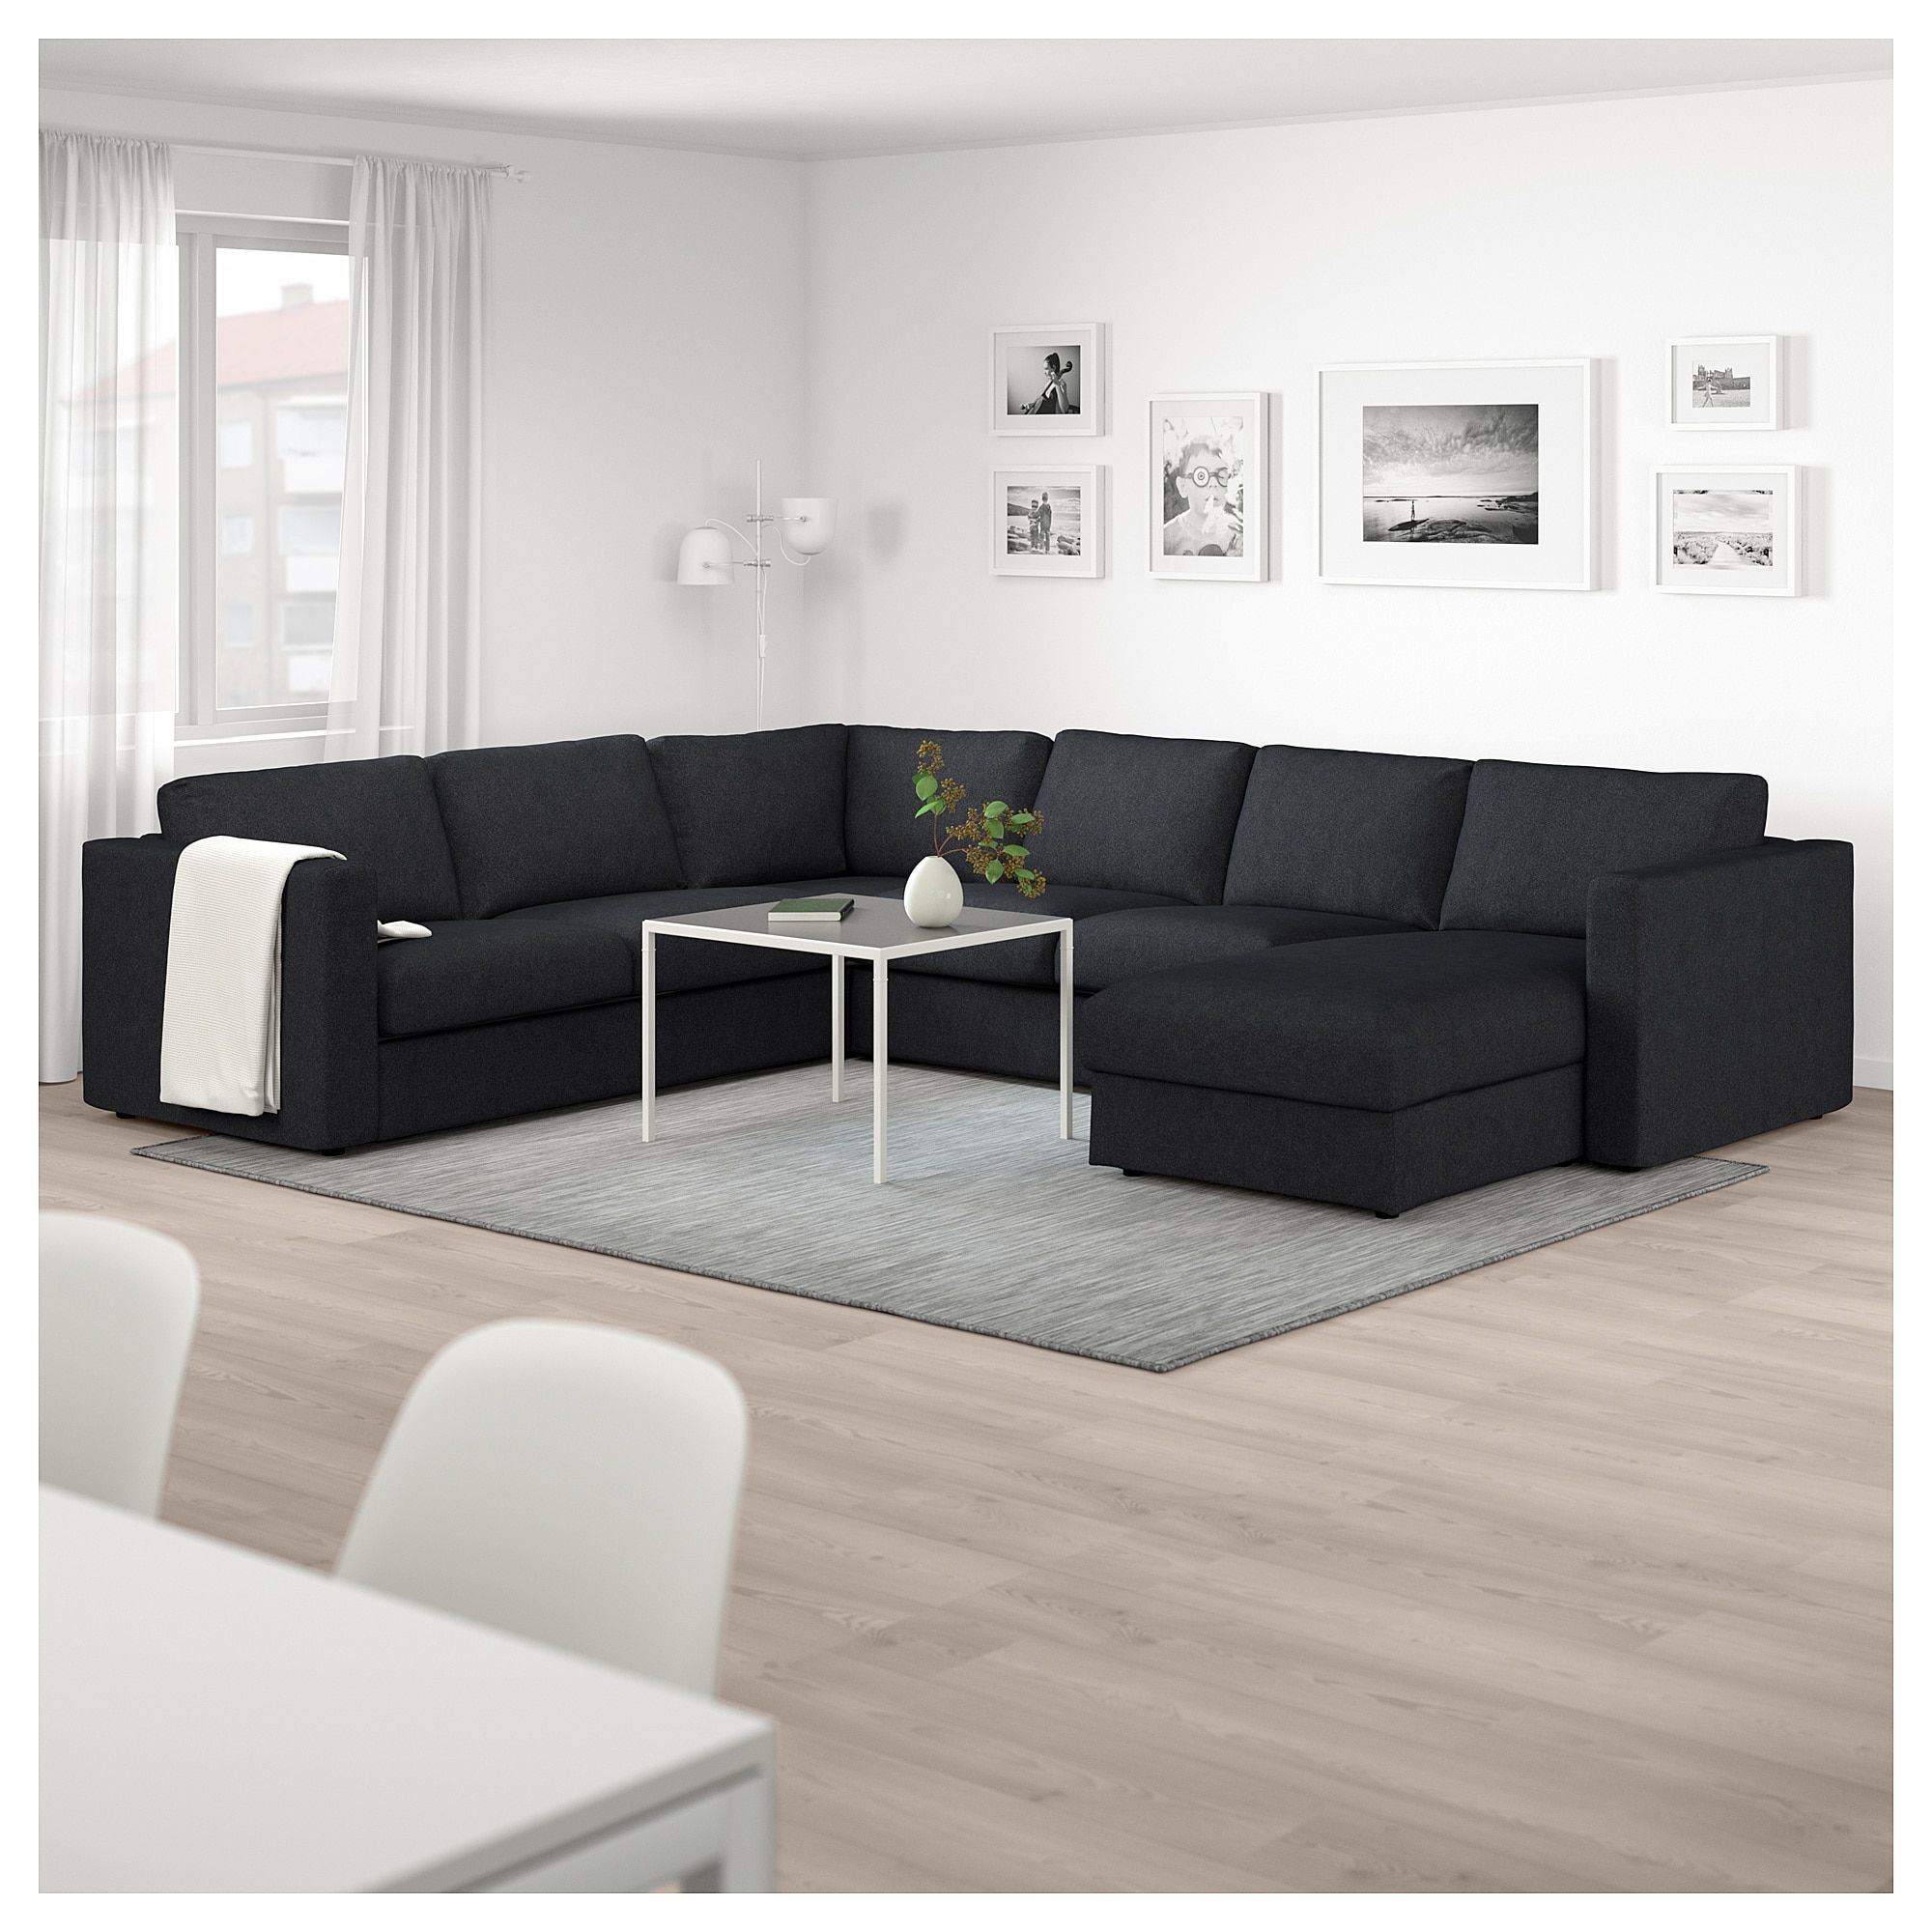 Furniture And Home Furnishings Black